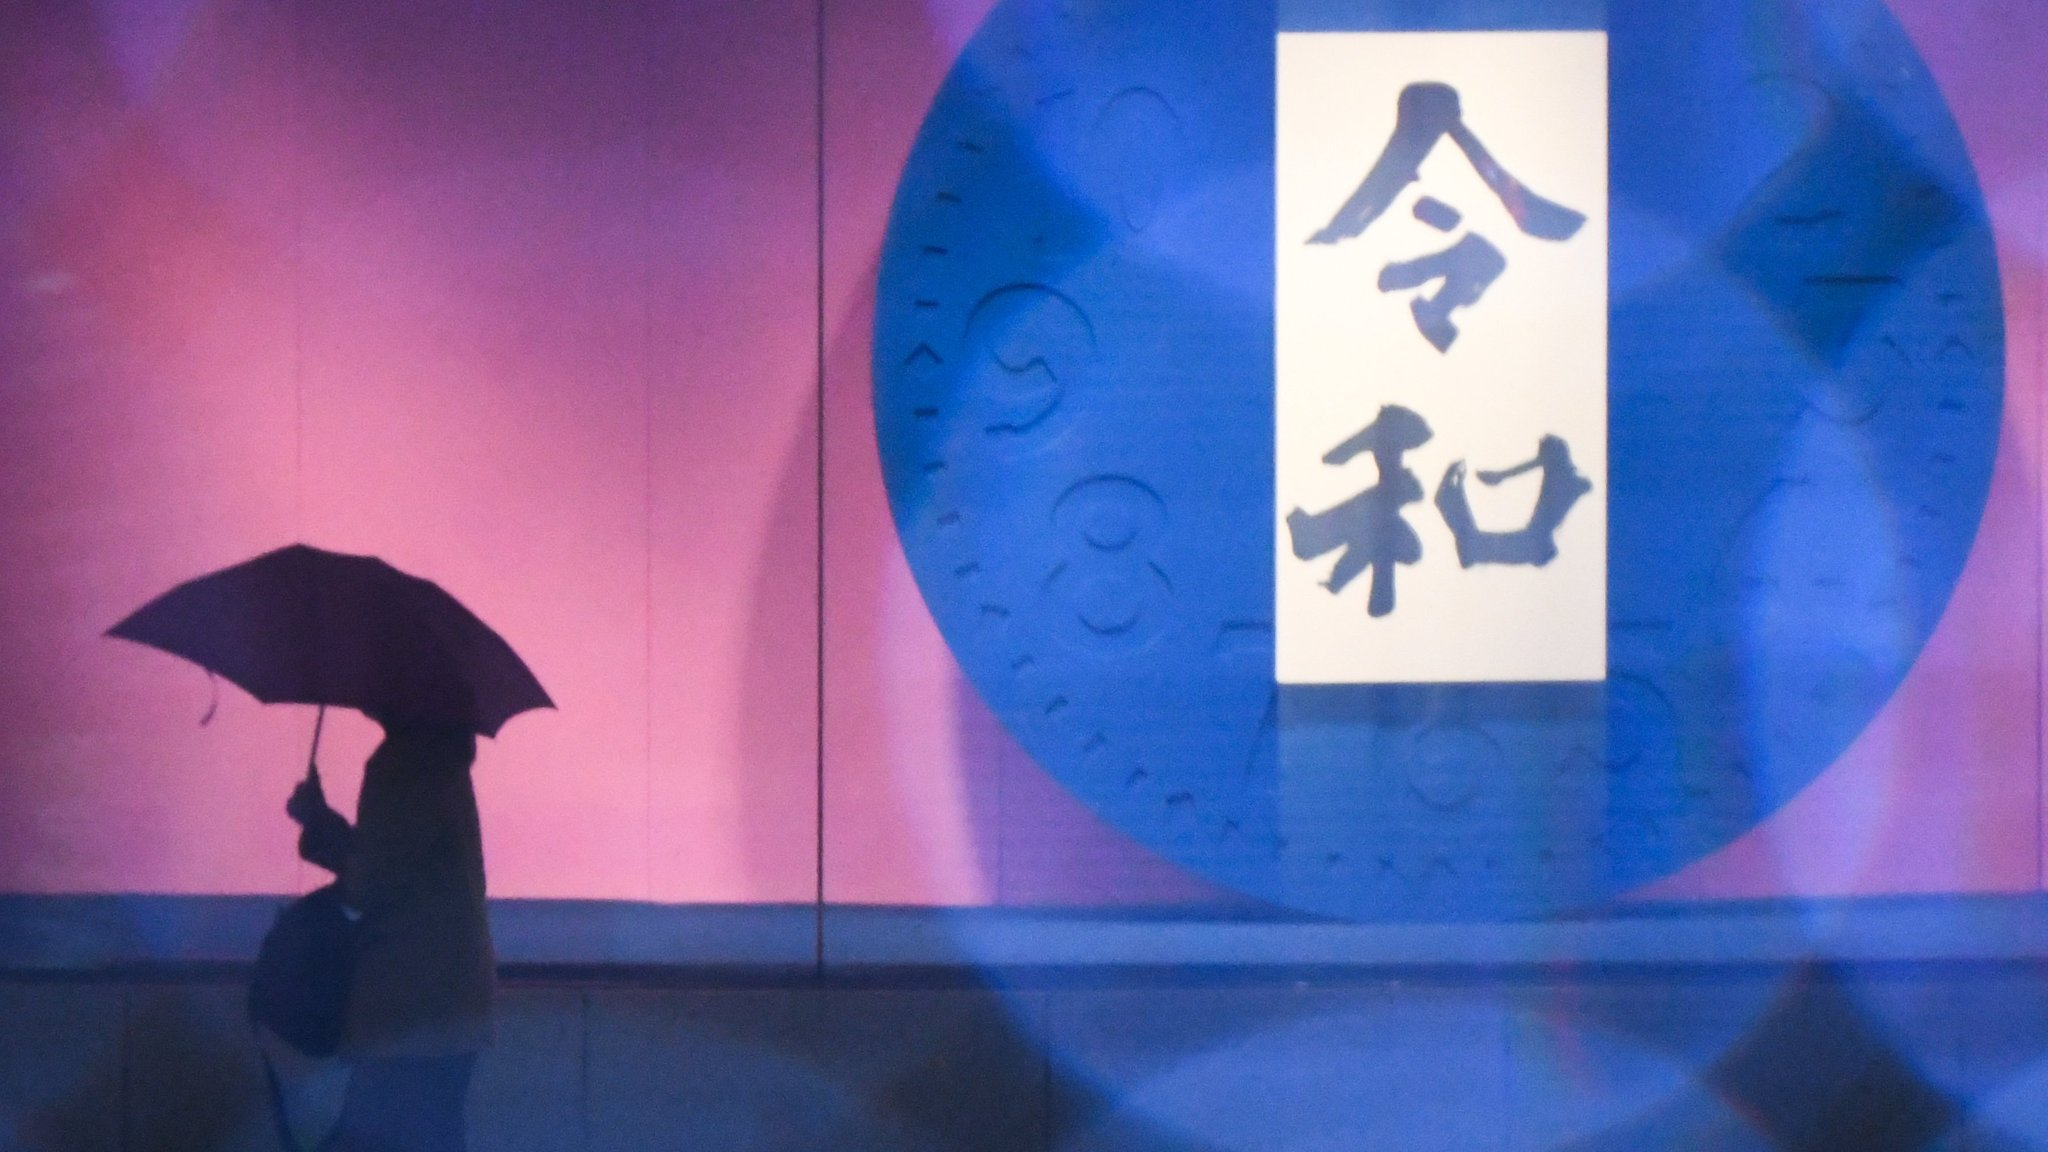 """01 April 2019, Japan, Tokyo: A woman walks past by the name of the Japanese new era """"Reiwa"""" which the country's new emperor Naruhito will reign. The word consists of two Japanese Kanji characters, """"Rei""""meaning order, command or good, while """"Wa"""" means harmony. Photo: Ramiro Agustin Vargas Tabares/ZUMA Wire/dpa"""